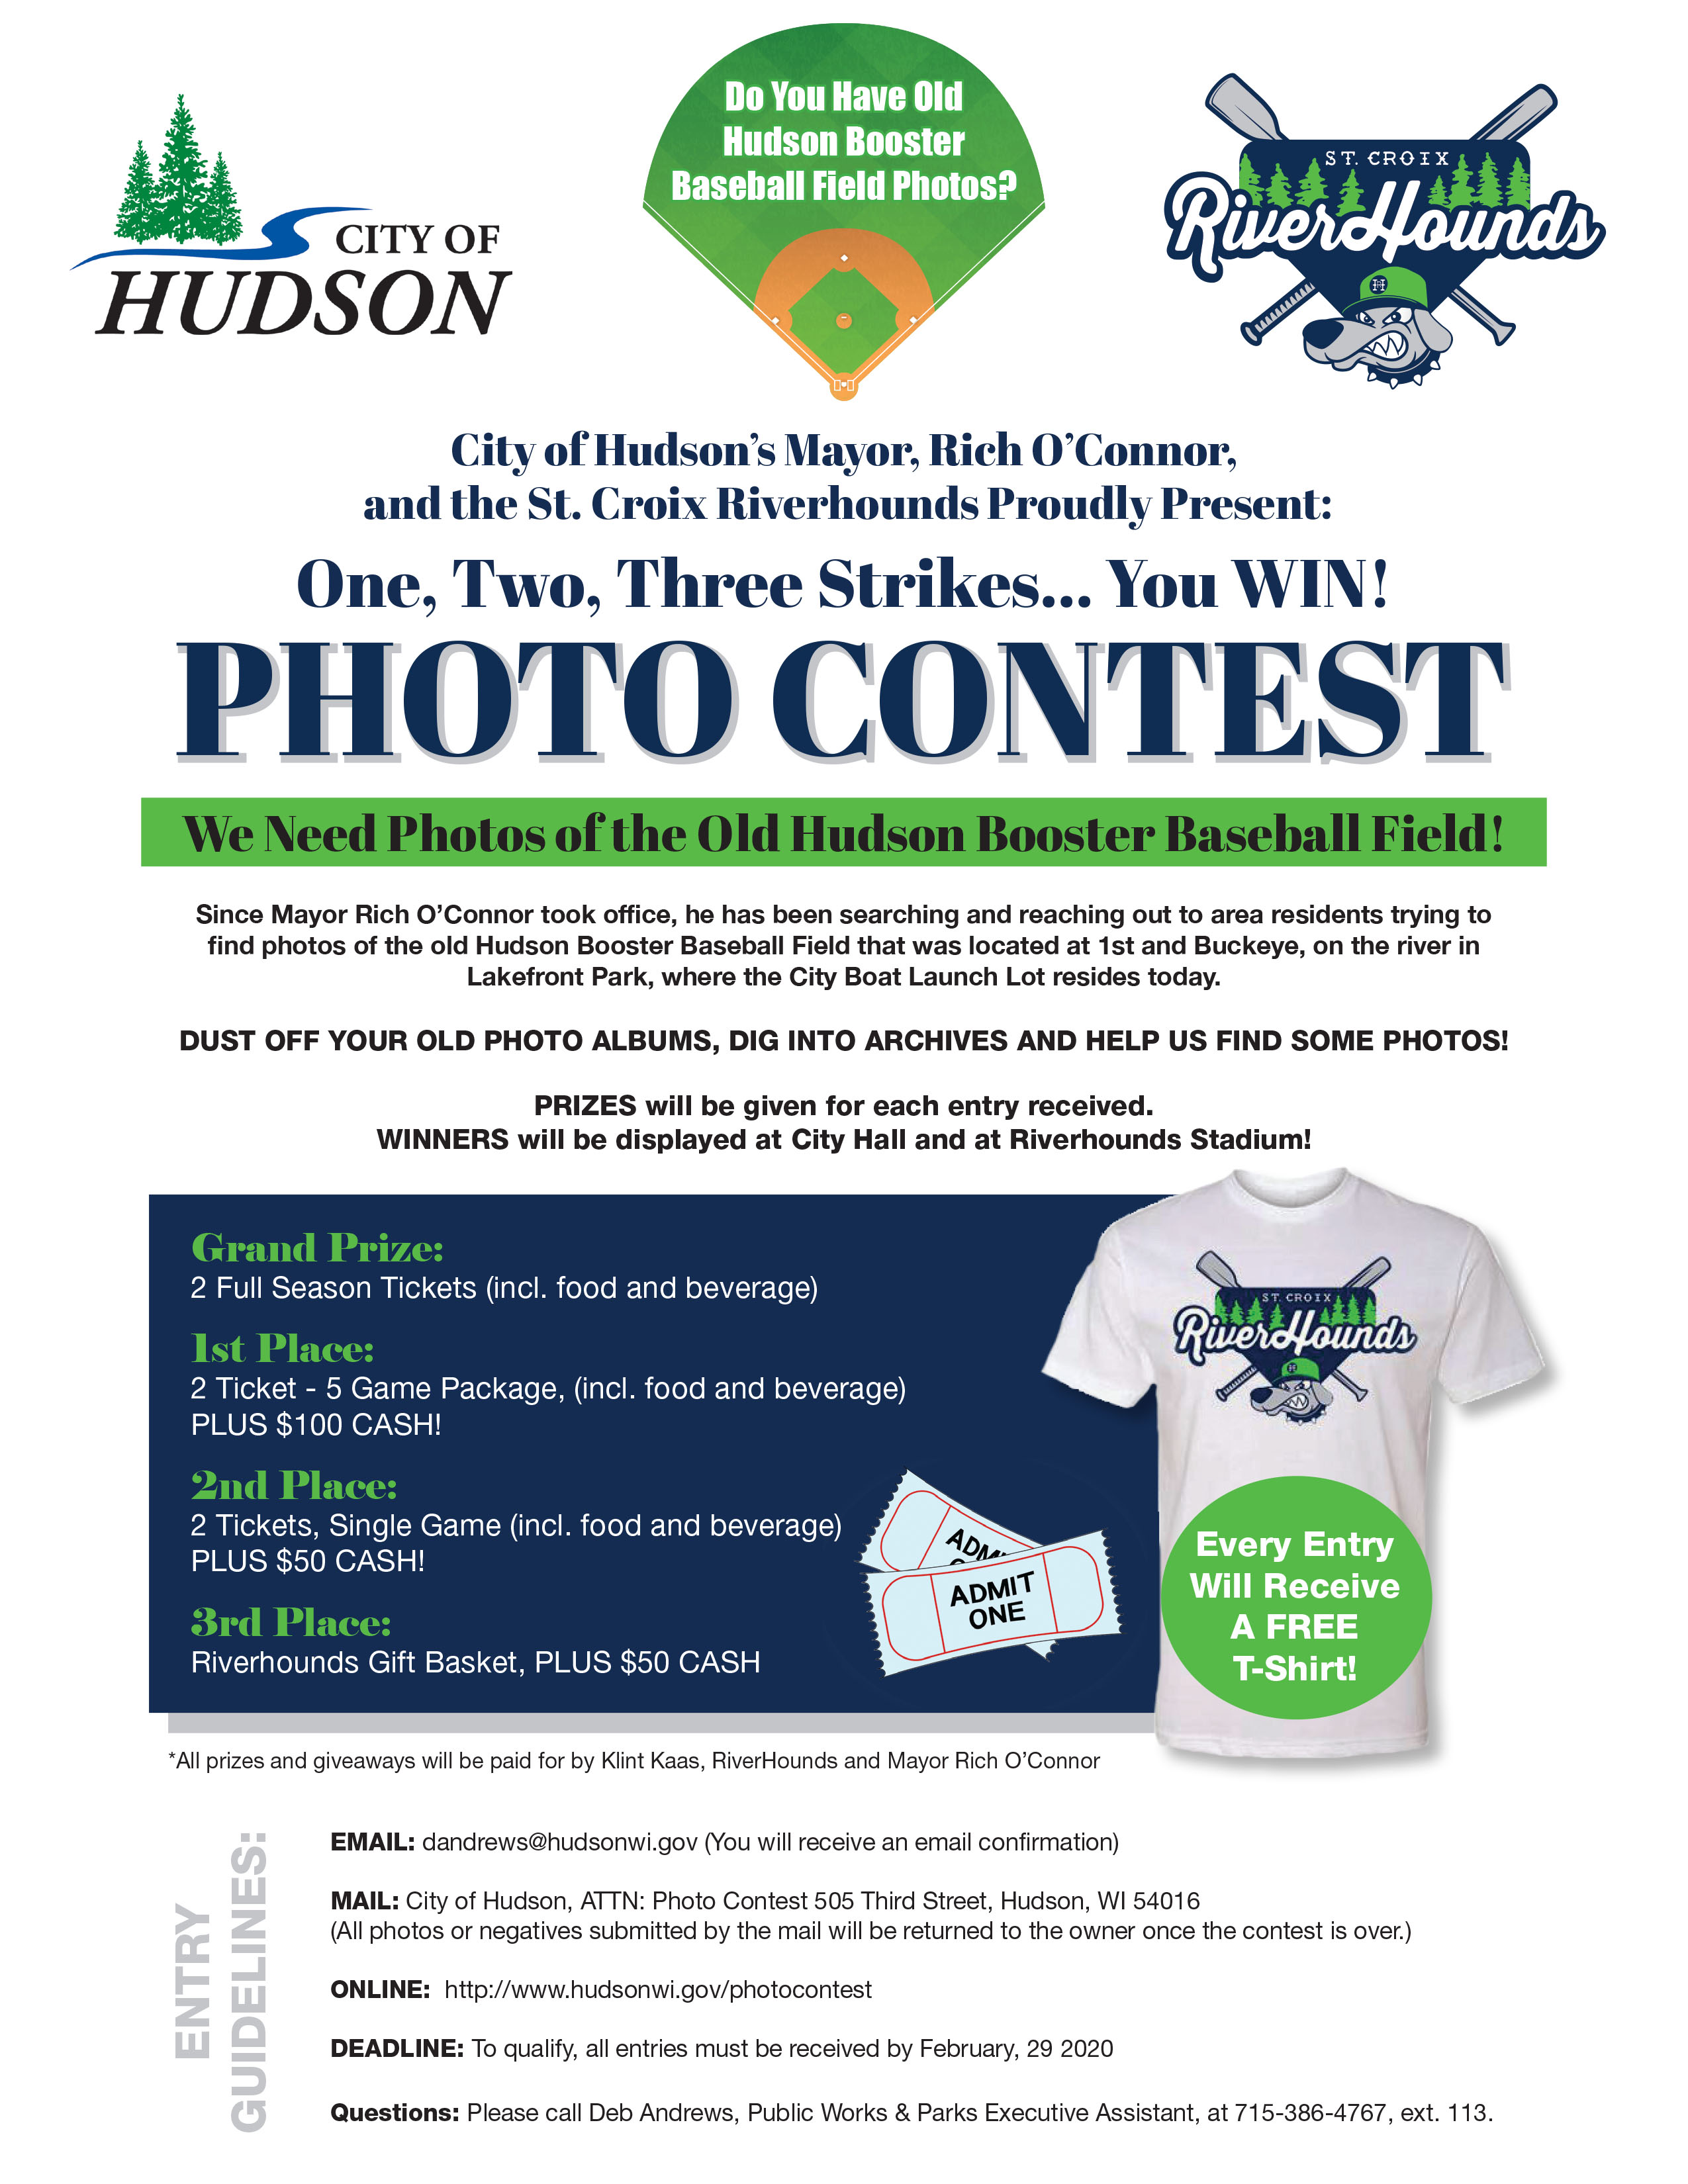 City Of Hudson & St. Croix River Hounds Photo Contest Information